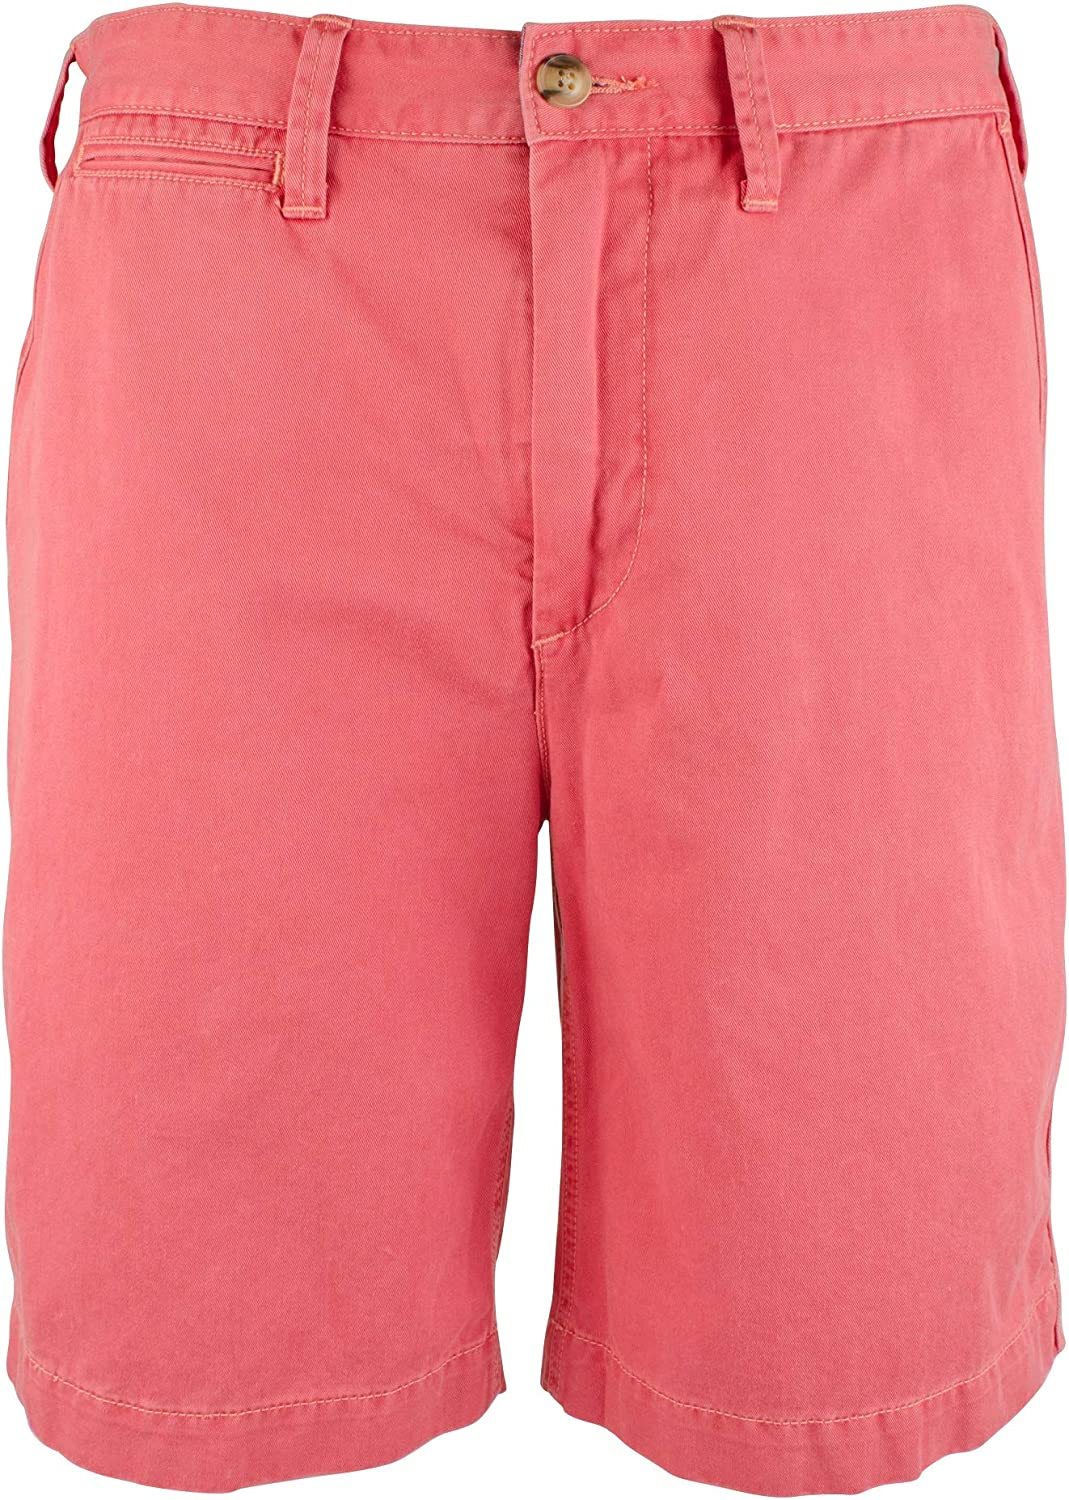 "Ralph Lauren Polo Men's 10"" Relaxed-Fit Cotton Flat Front Chino Shorts"